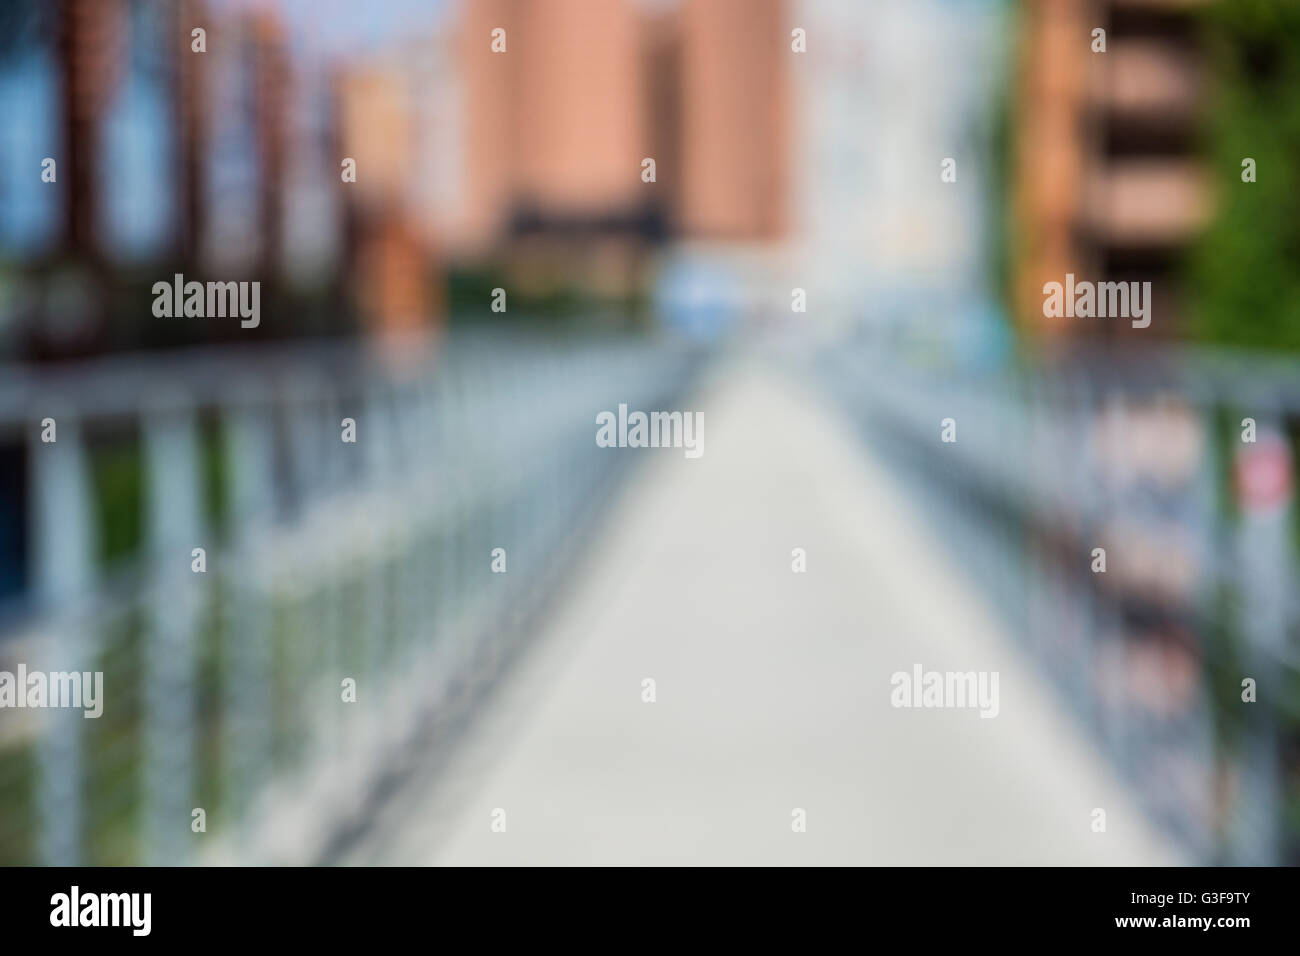 Unfocused blurred view on bridge and summer alley, in city setting. Urban environment background - Stock Image